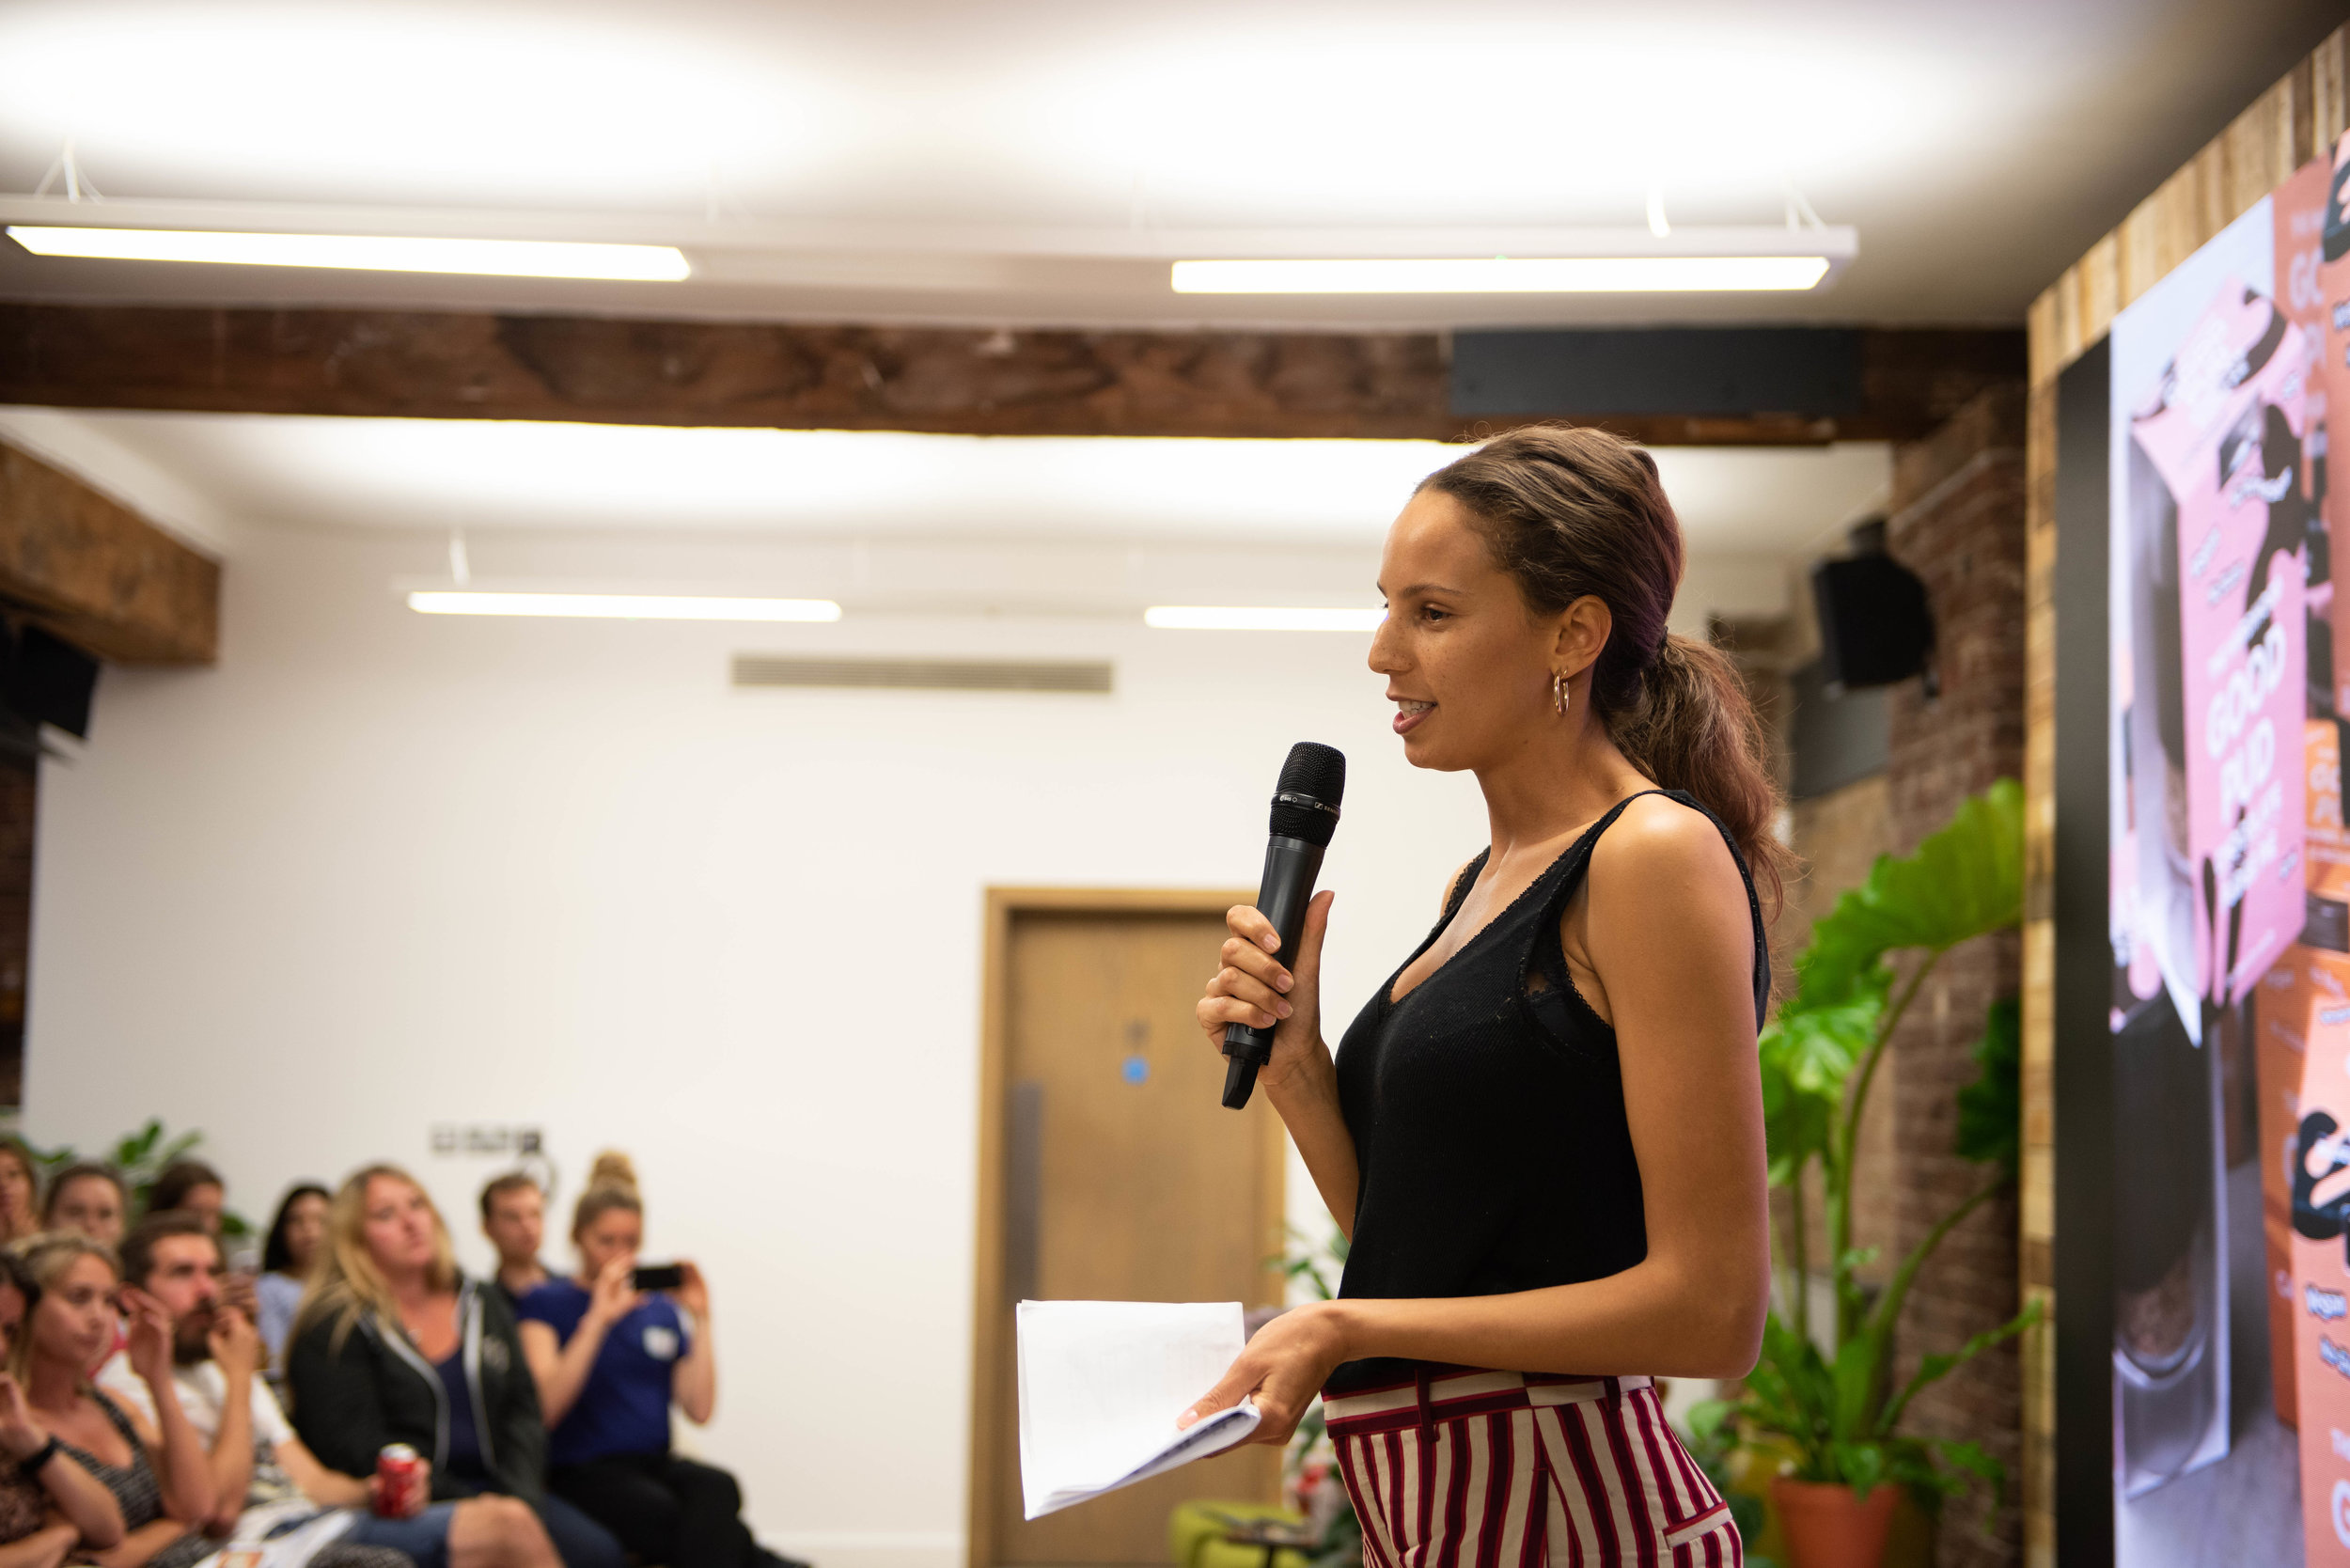 Leah Garwood - Gowers of The Hardihood during her Pitch + Plant Pitch The Hardihood